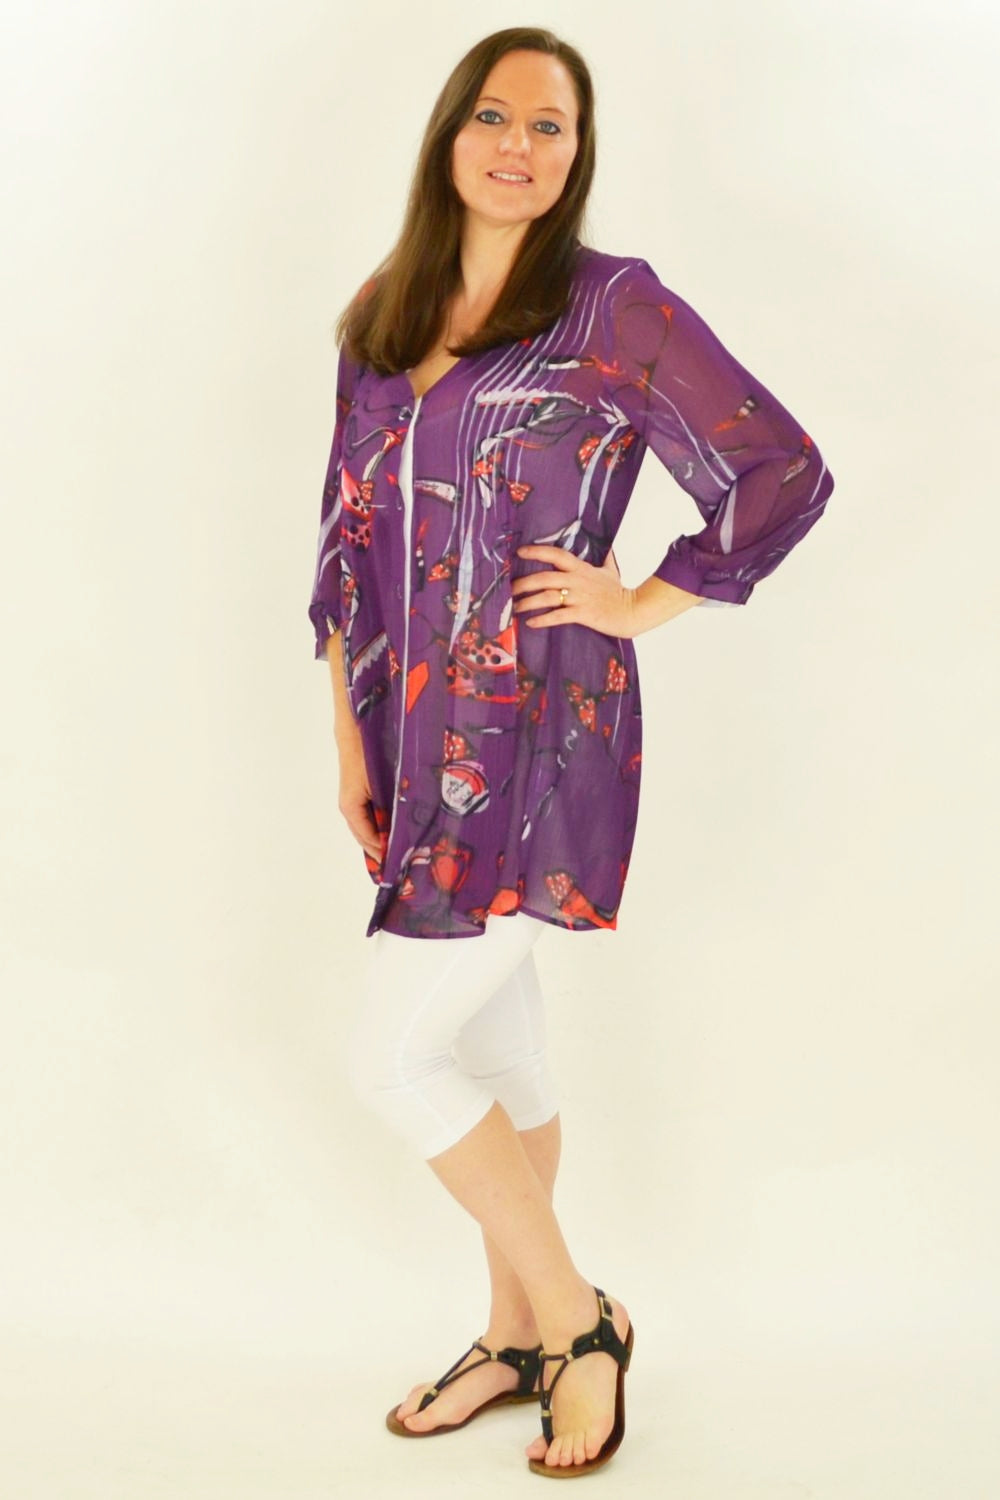 Purple Shoe Tunic Shirt - at I Love Tunics @ www.ilovetunics.com = Number One! Tunics Destination